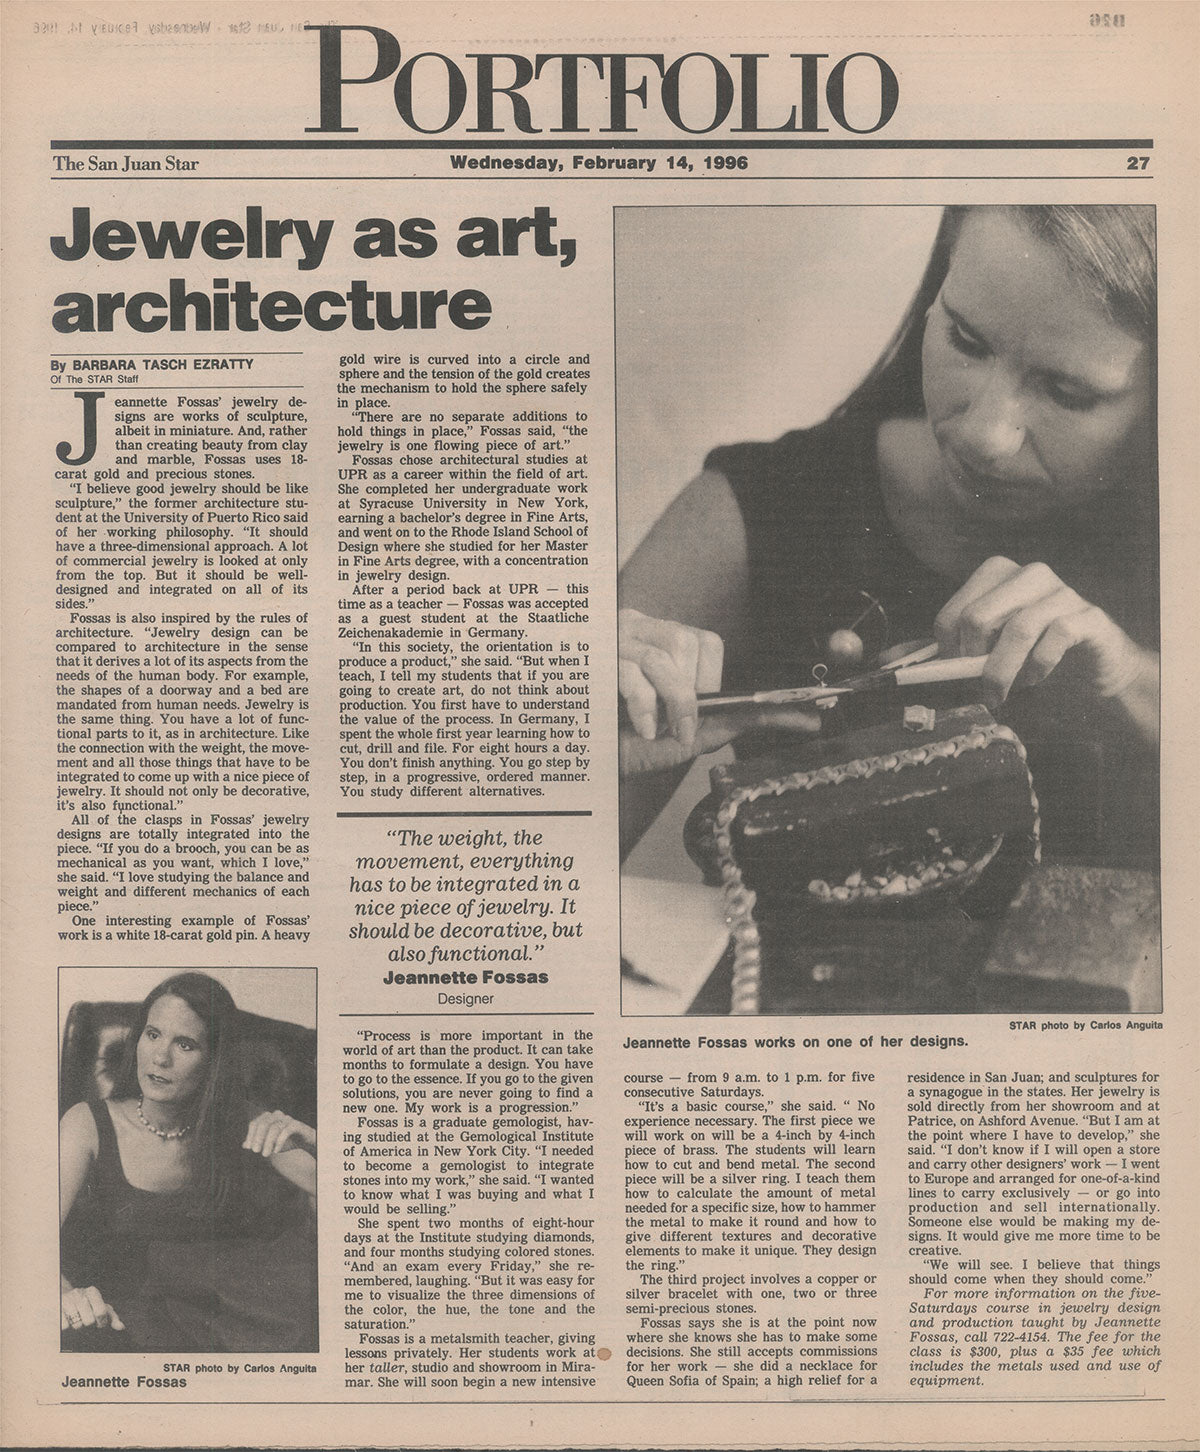 The San Juan Star - Portfolio / Puerto Rico / Jewelry as art, architecture / 1996